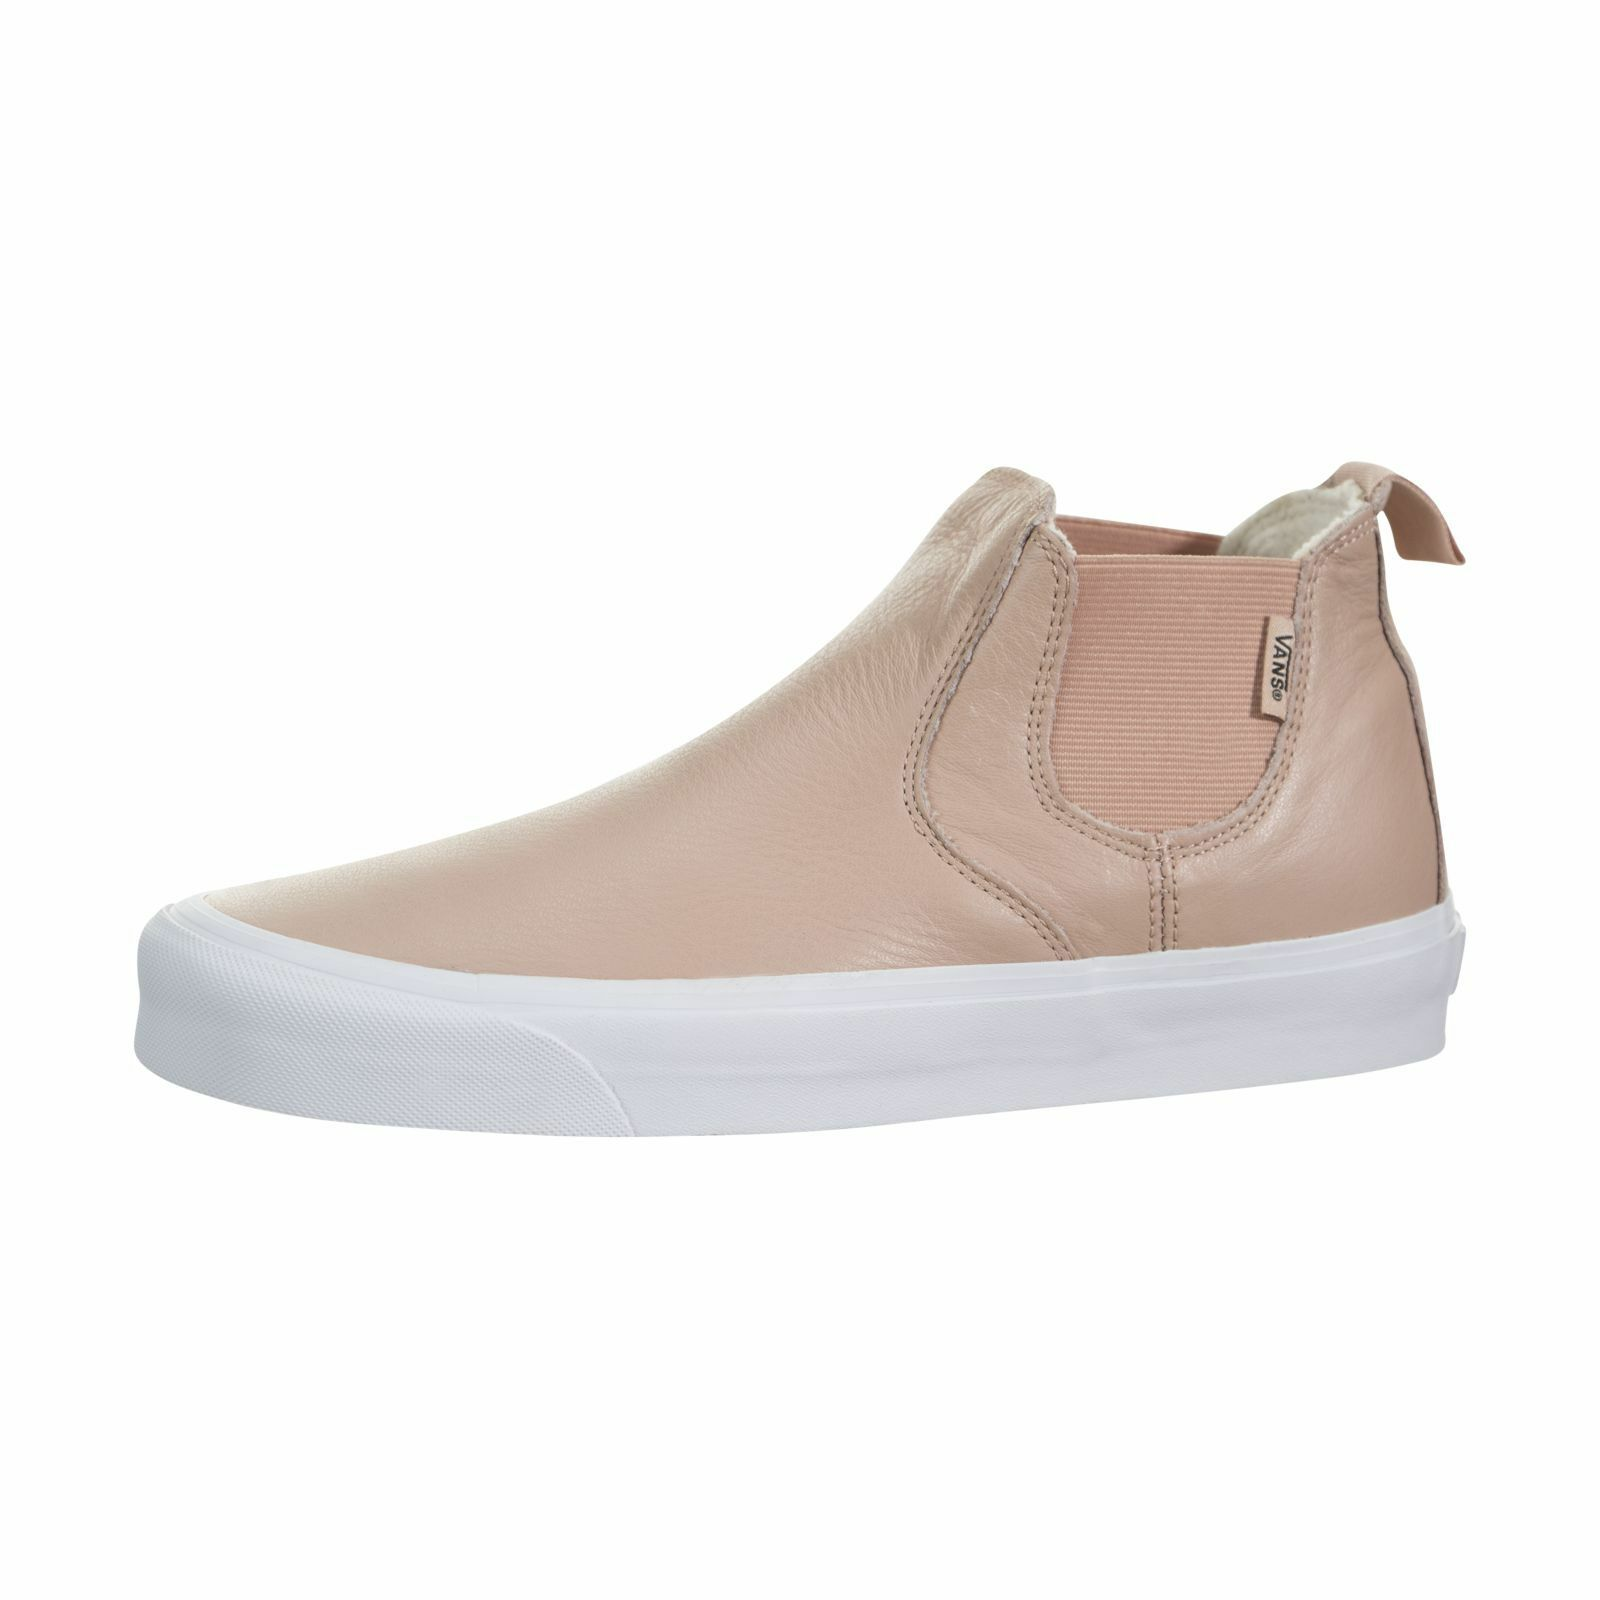 Vans Classic Slip-On Mid vn0a3jeyqtr